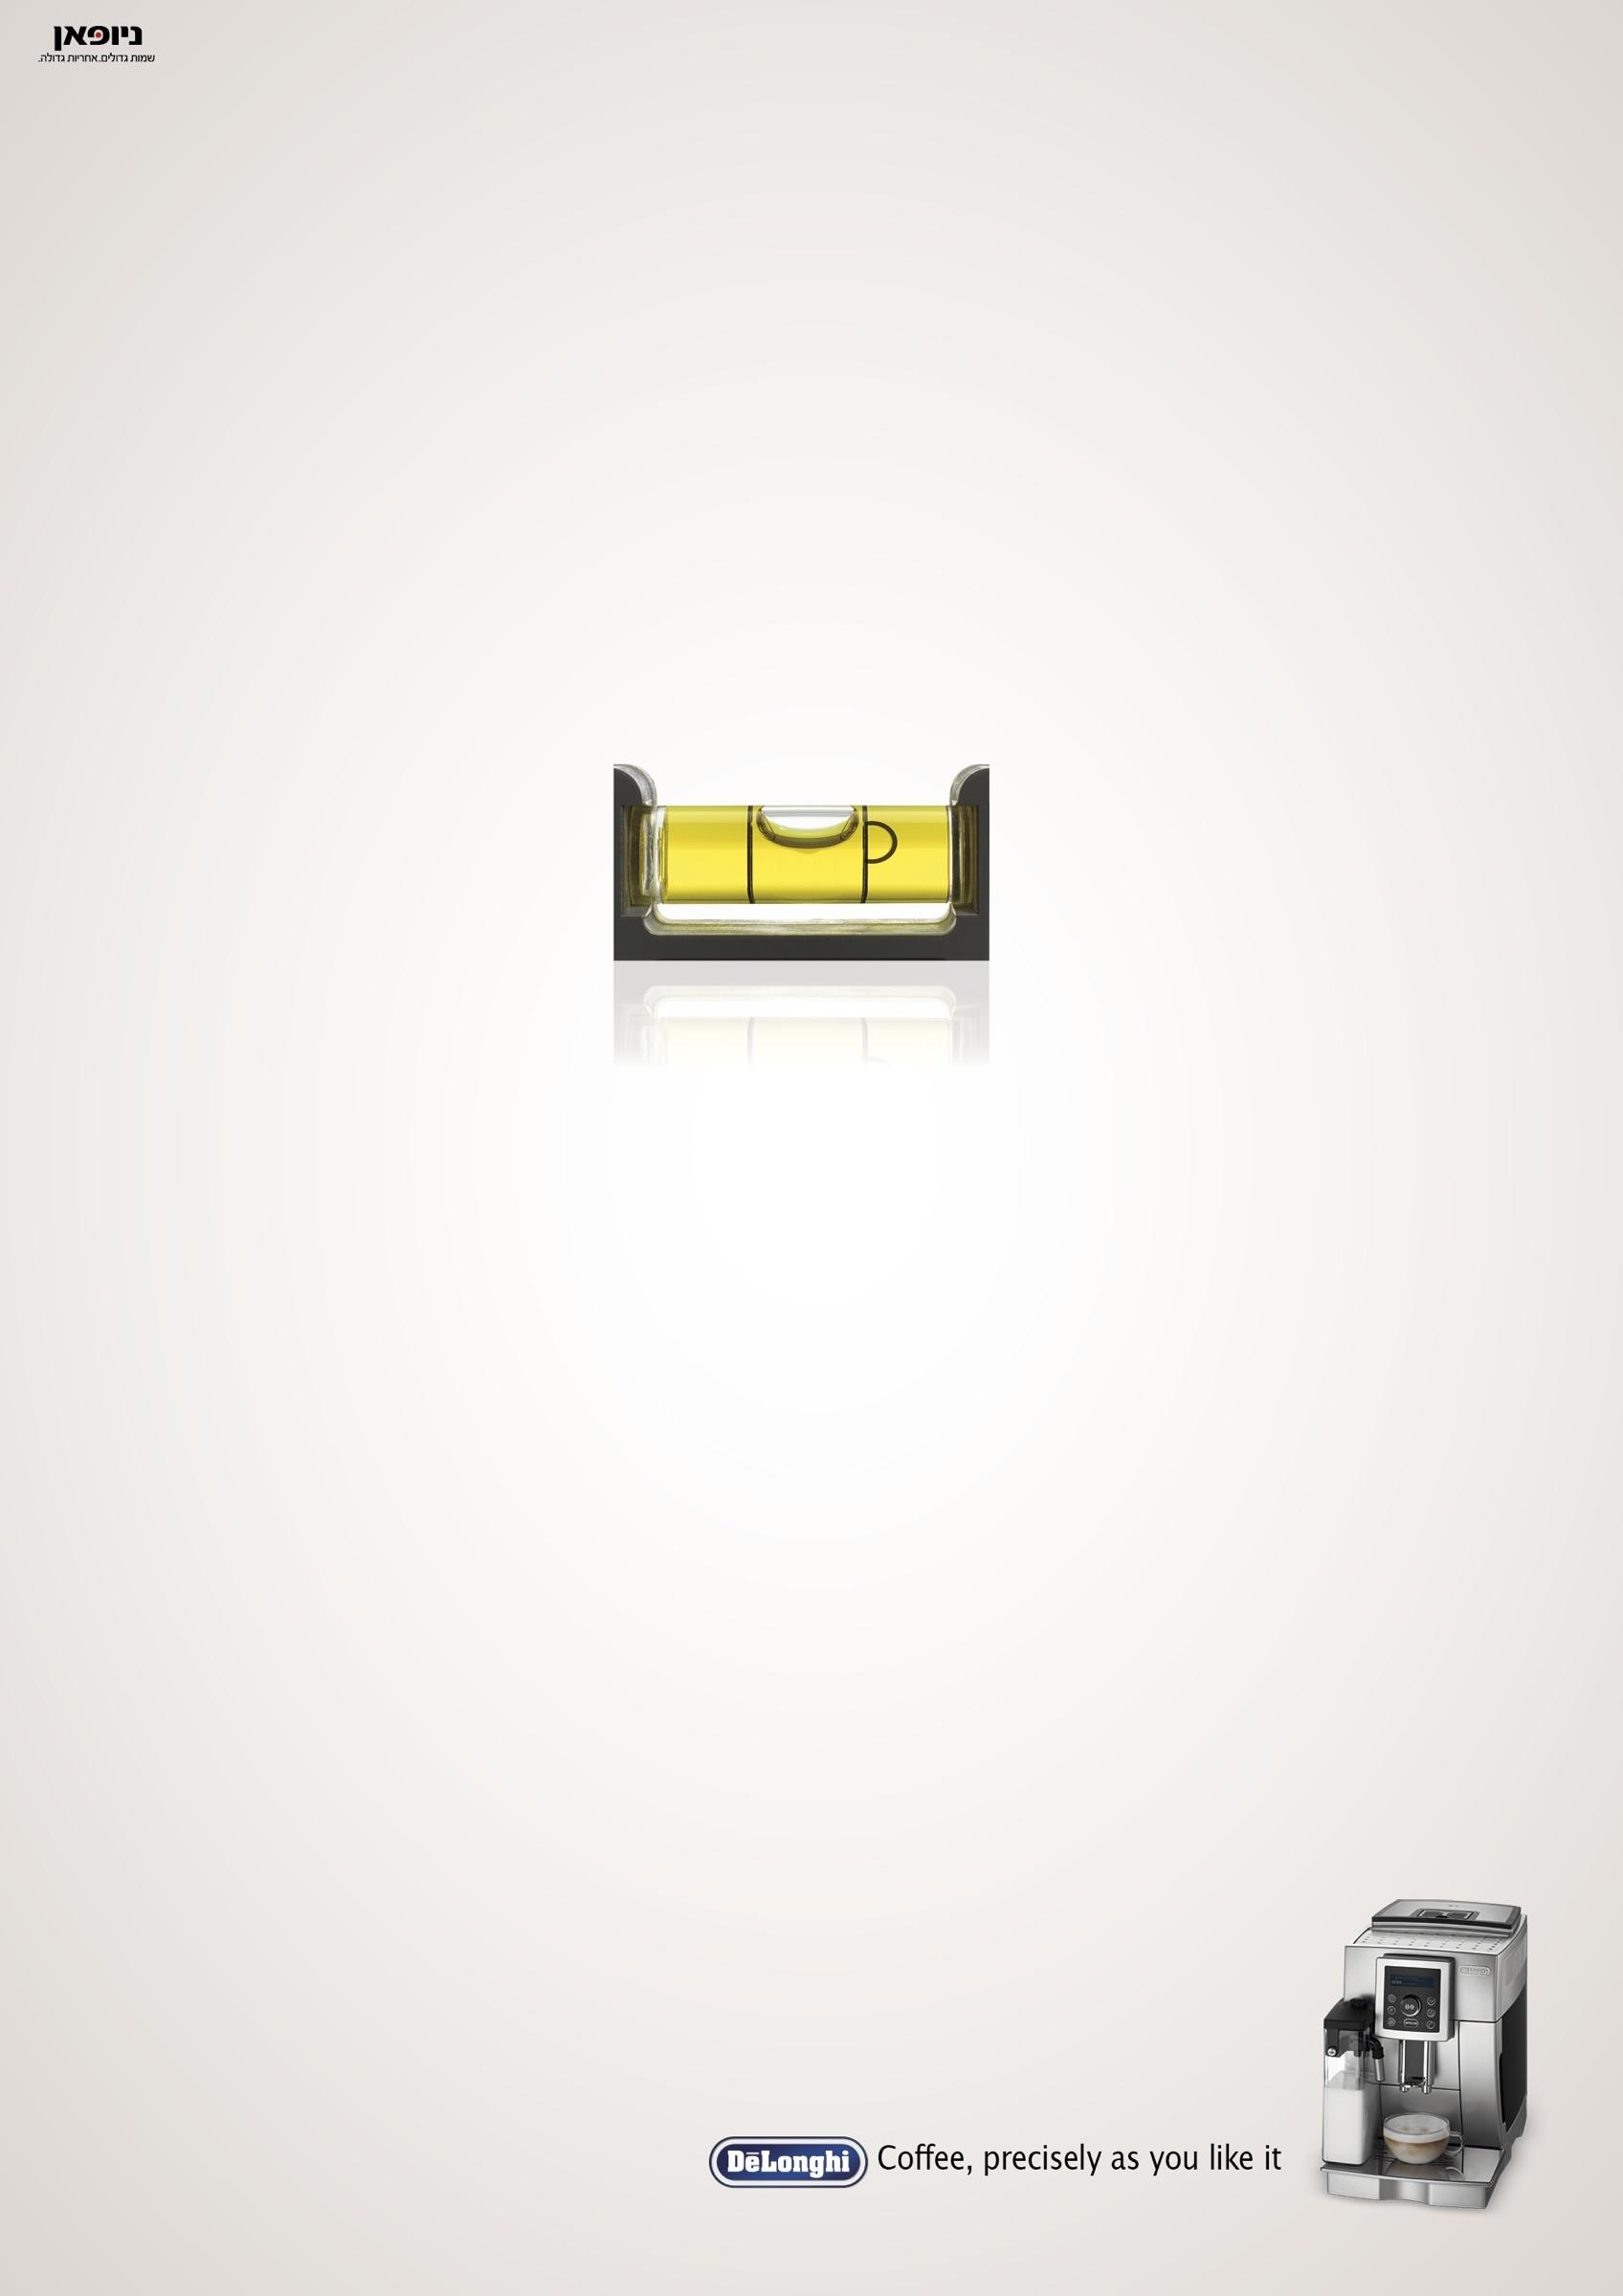 DeLonghi Print Ad -  Coffee, precisely as you like it